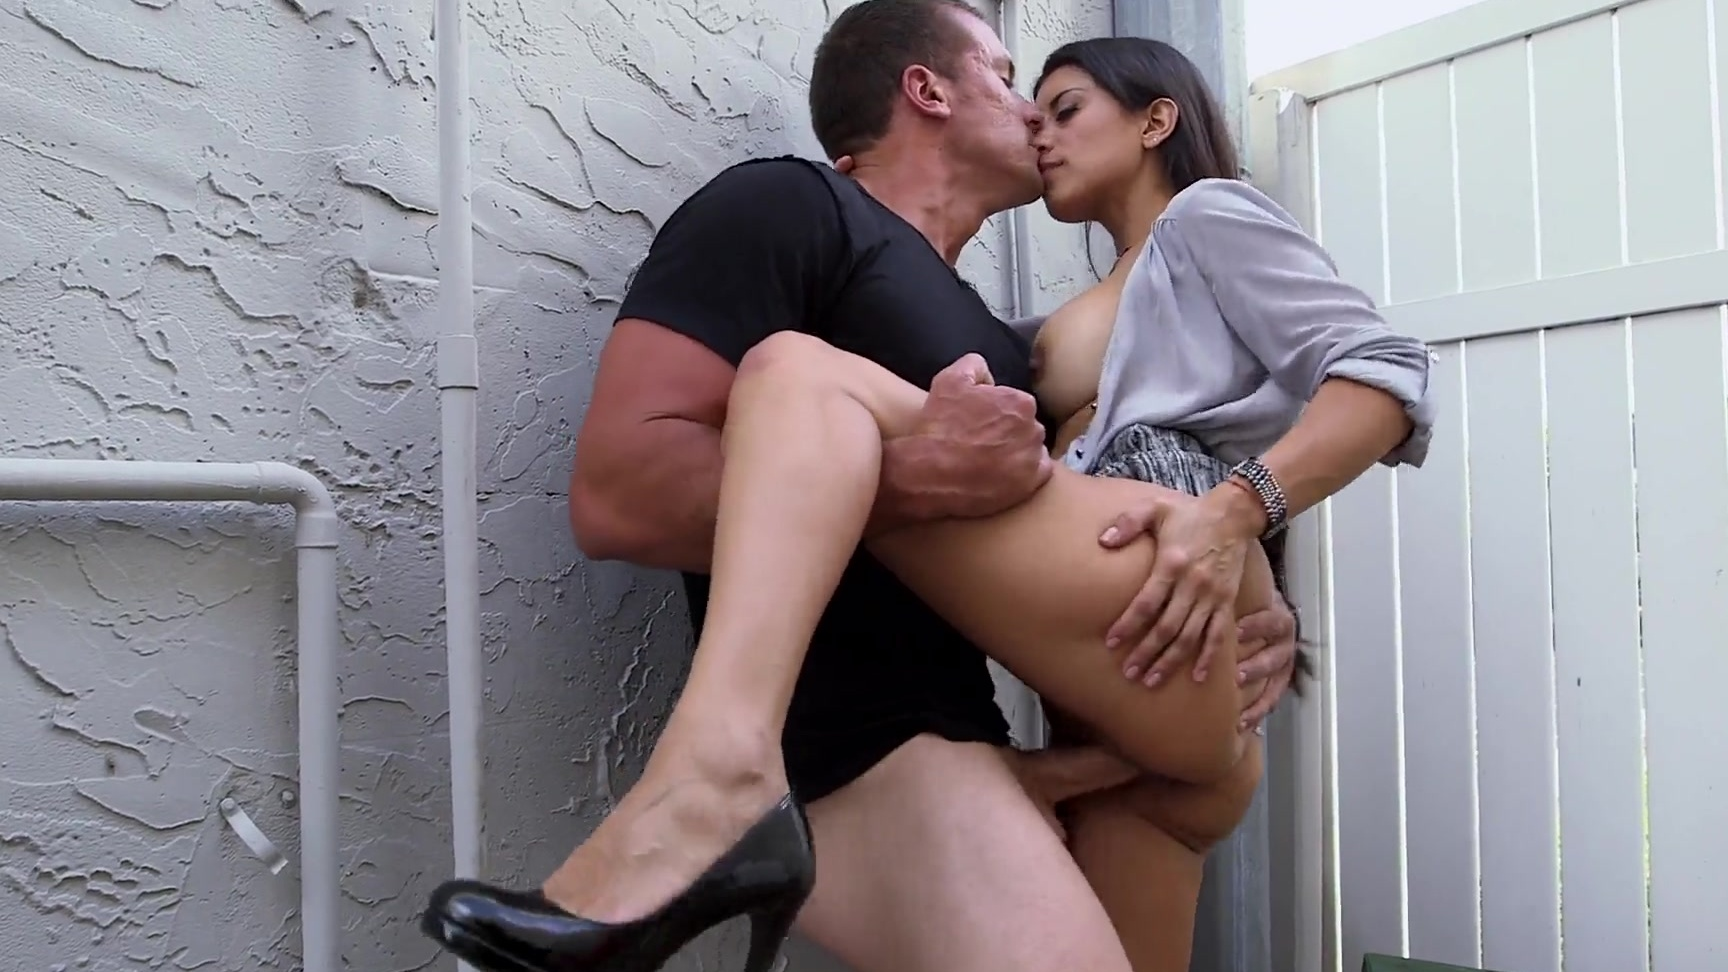 Latina fucked in public